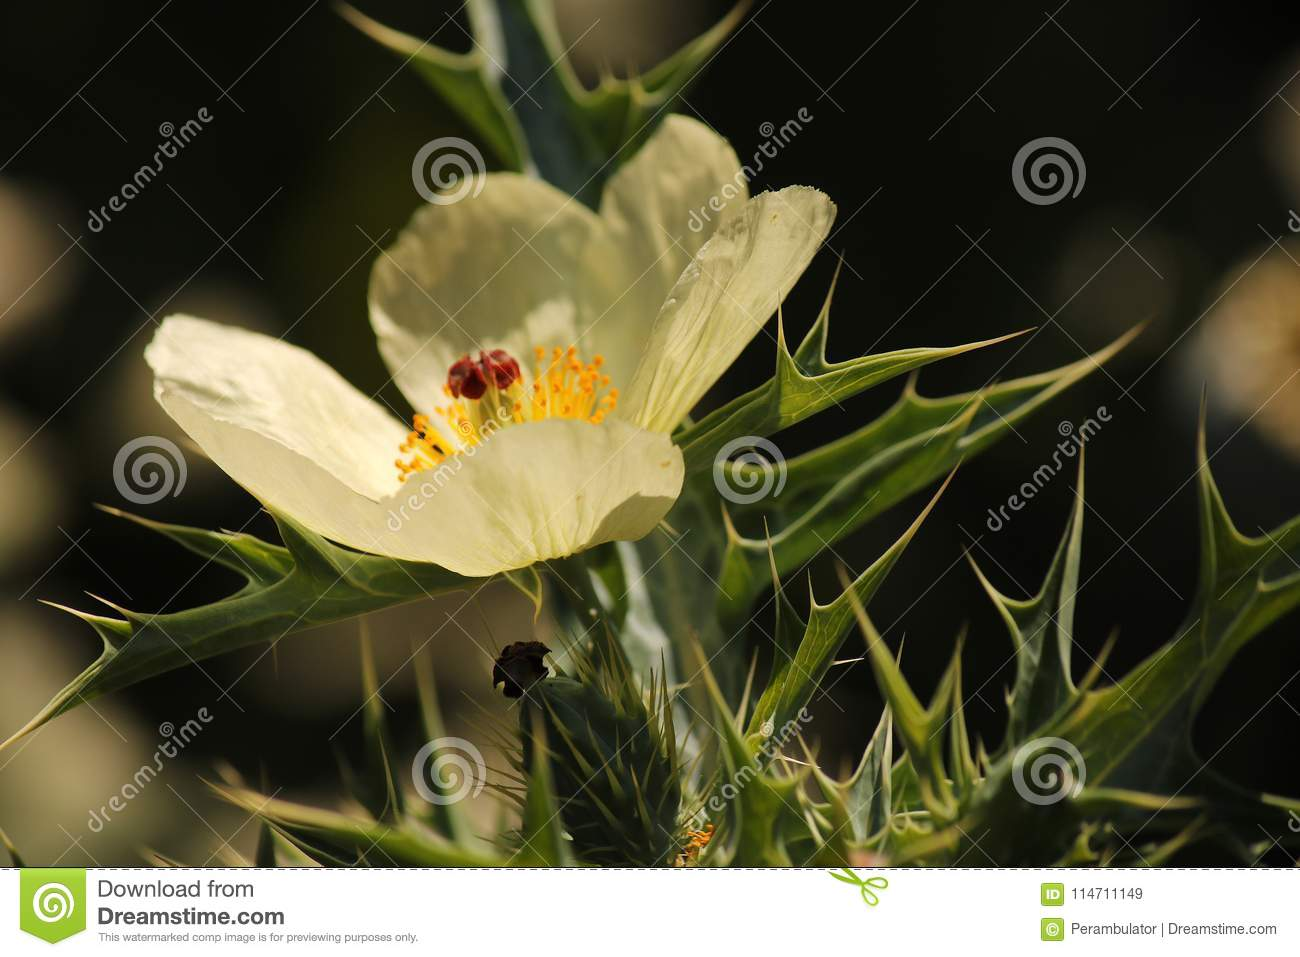 Petals Of Mexican Poppy Weed Flower Stock Image Image Of Dainty